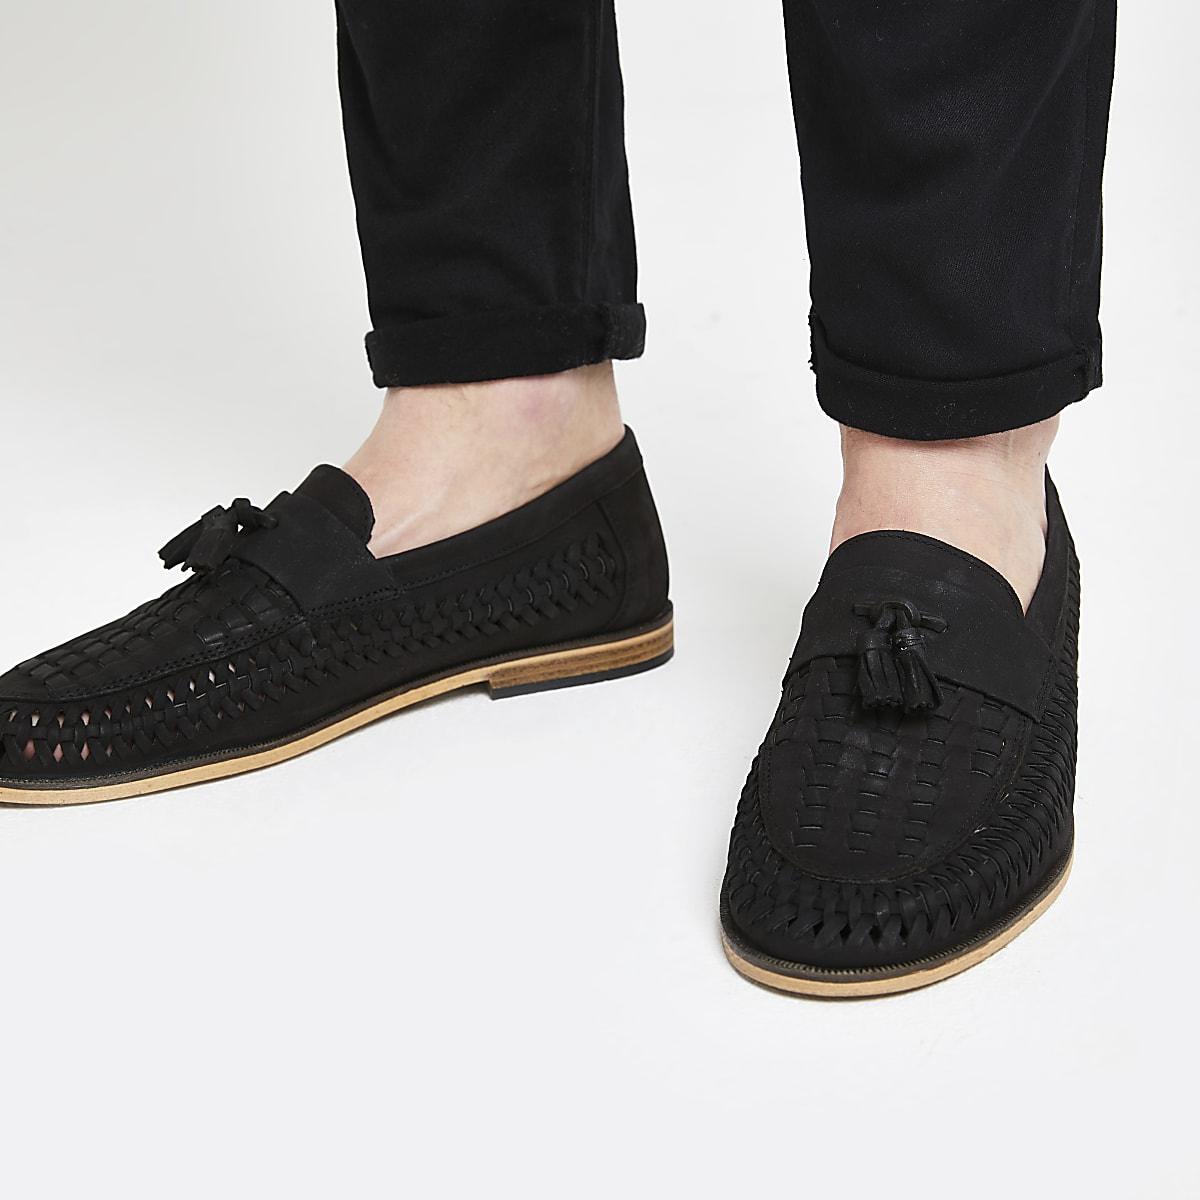 Black leather woven tassel front loafers - Shoes - Shoes ...